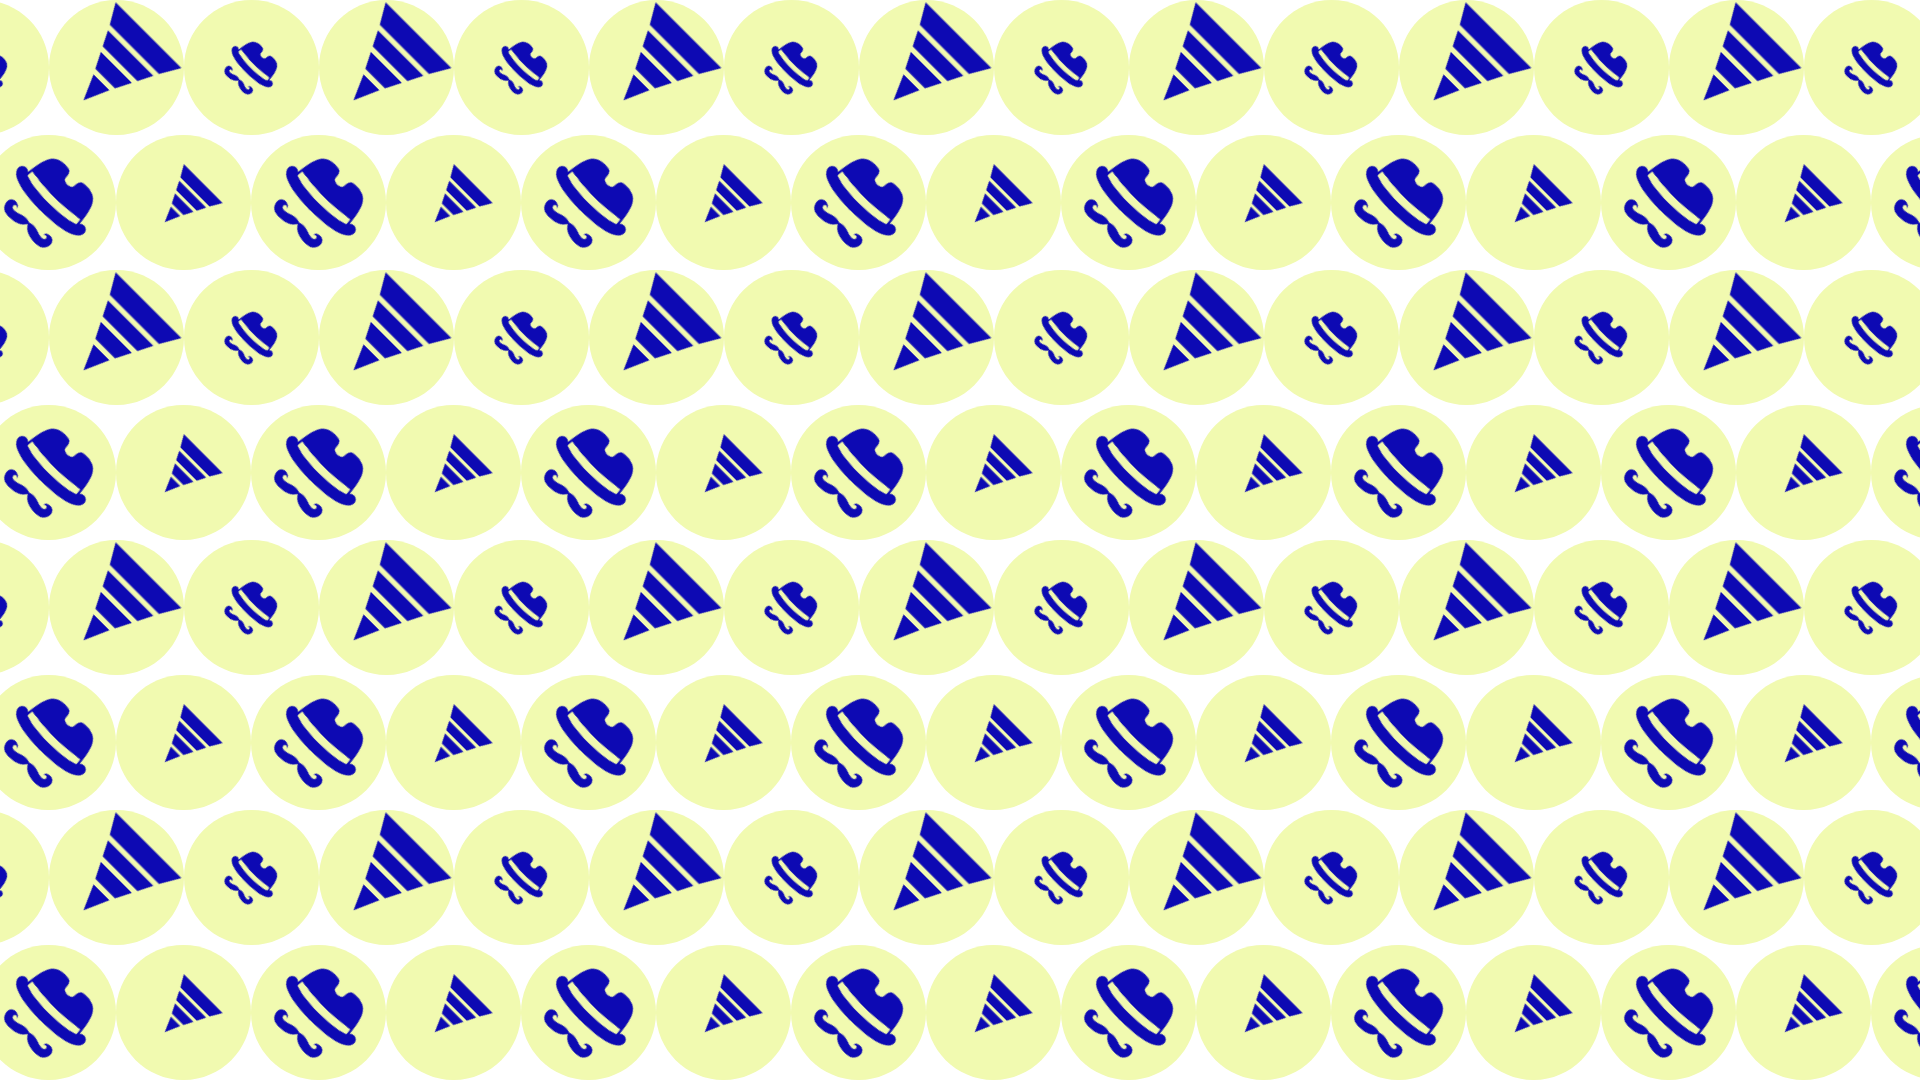 Blue, Text, Yellow, Pattern, Font, Design, Line, Symmetry, Circle, Product, Circular, Fashion, Shapes,  Free Image